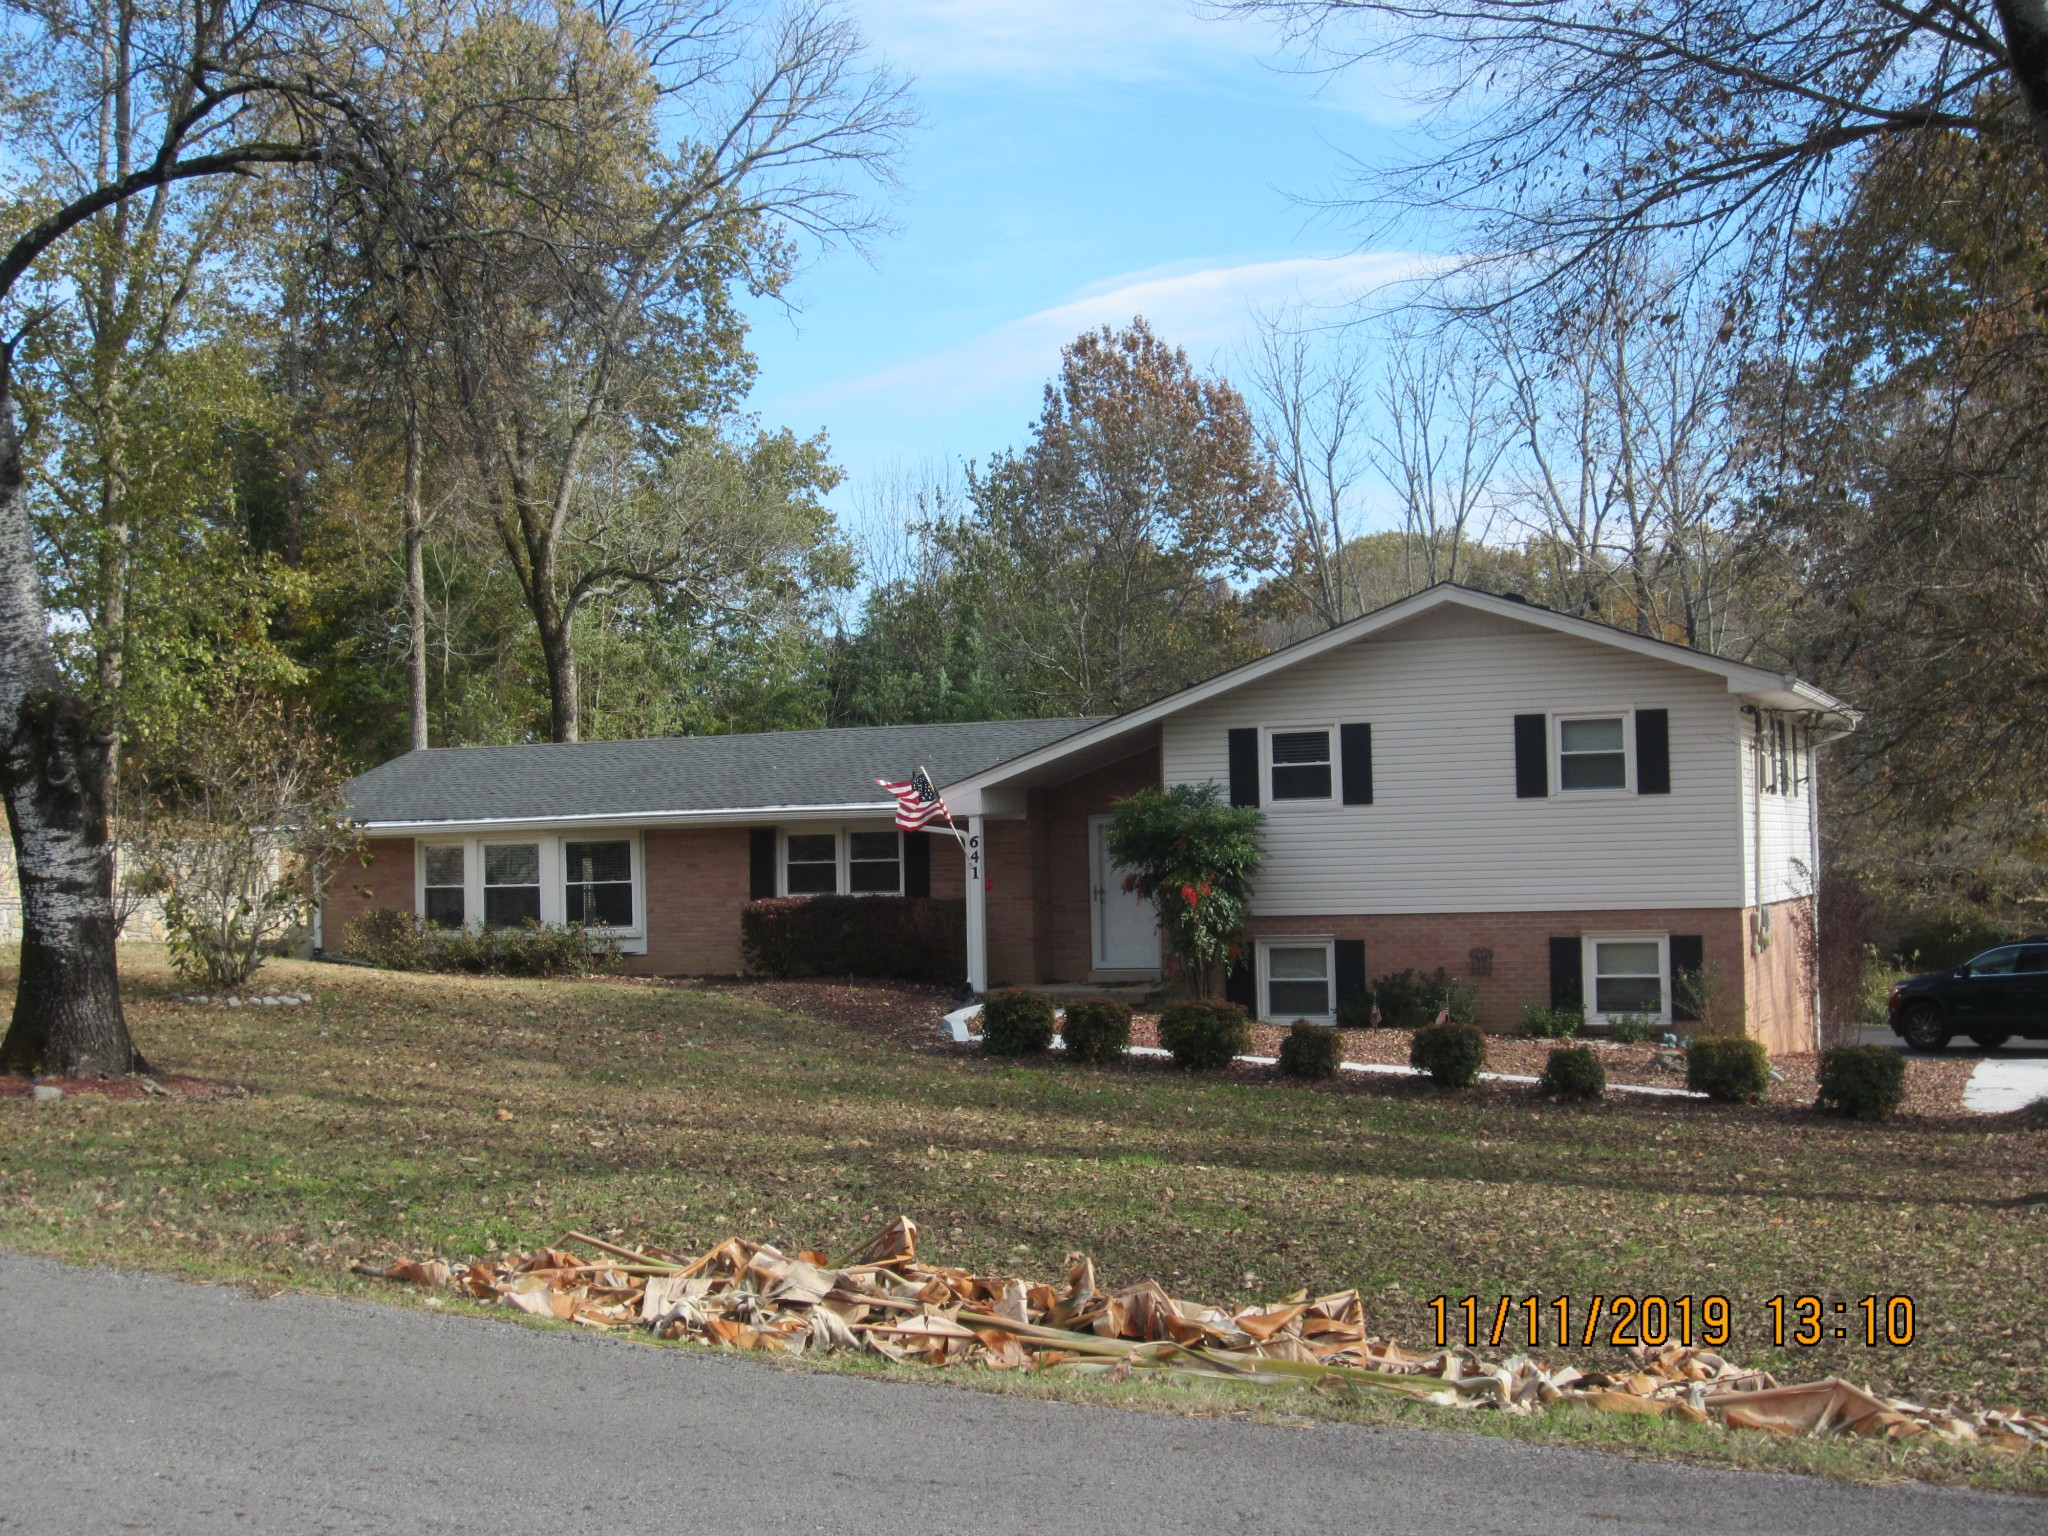 641 Hull Ave, Lewisburg, TN 37091 - Lewisburg, TN real estate listing